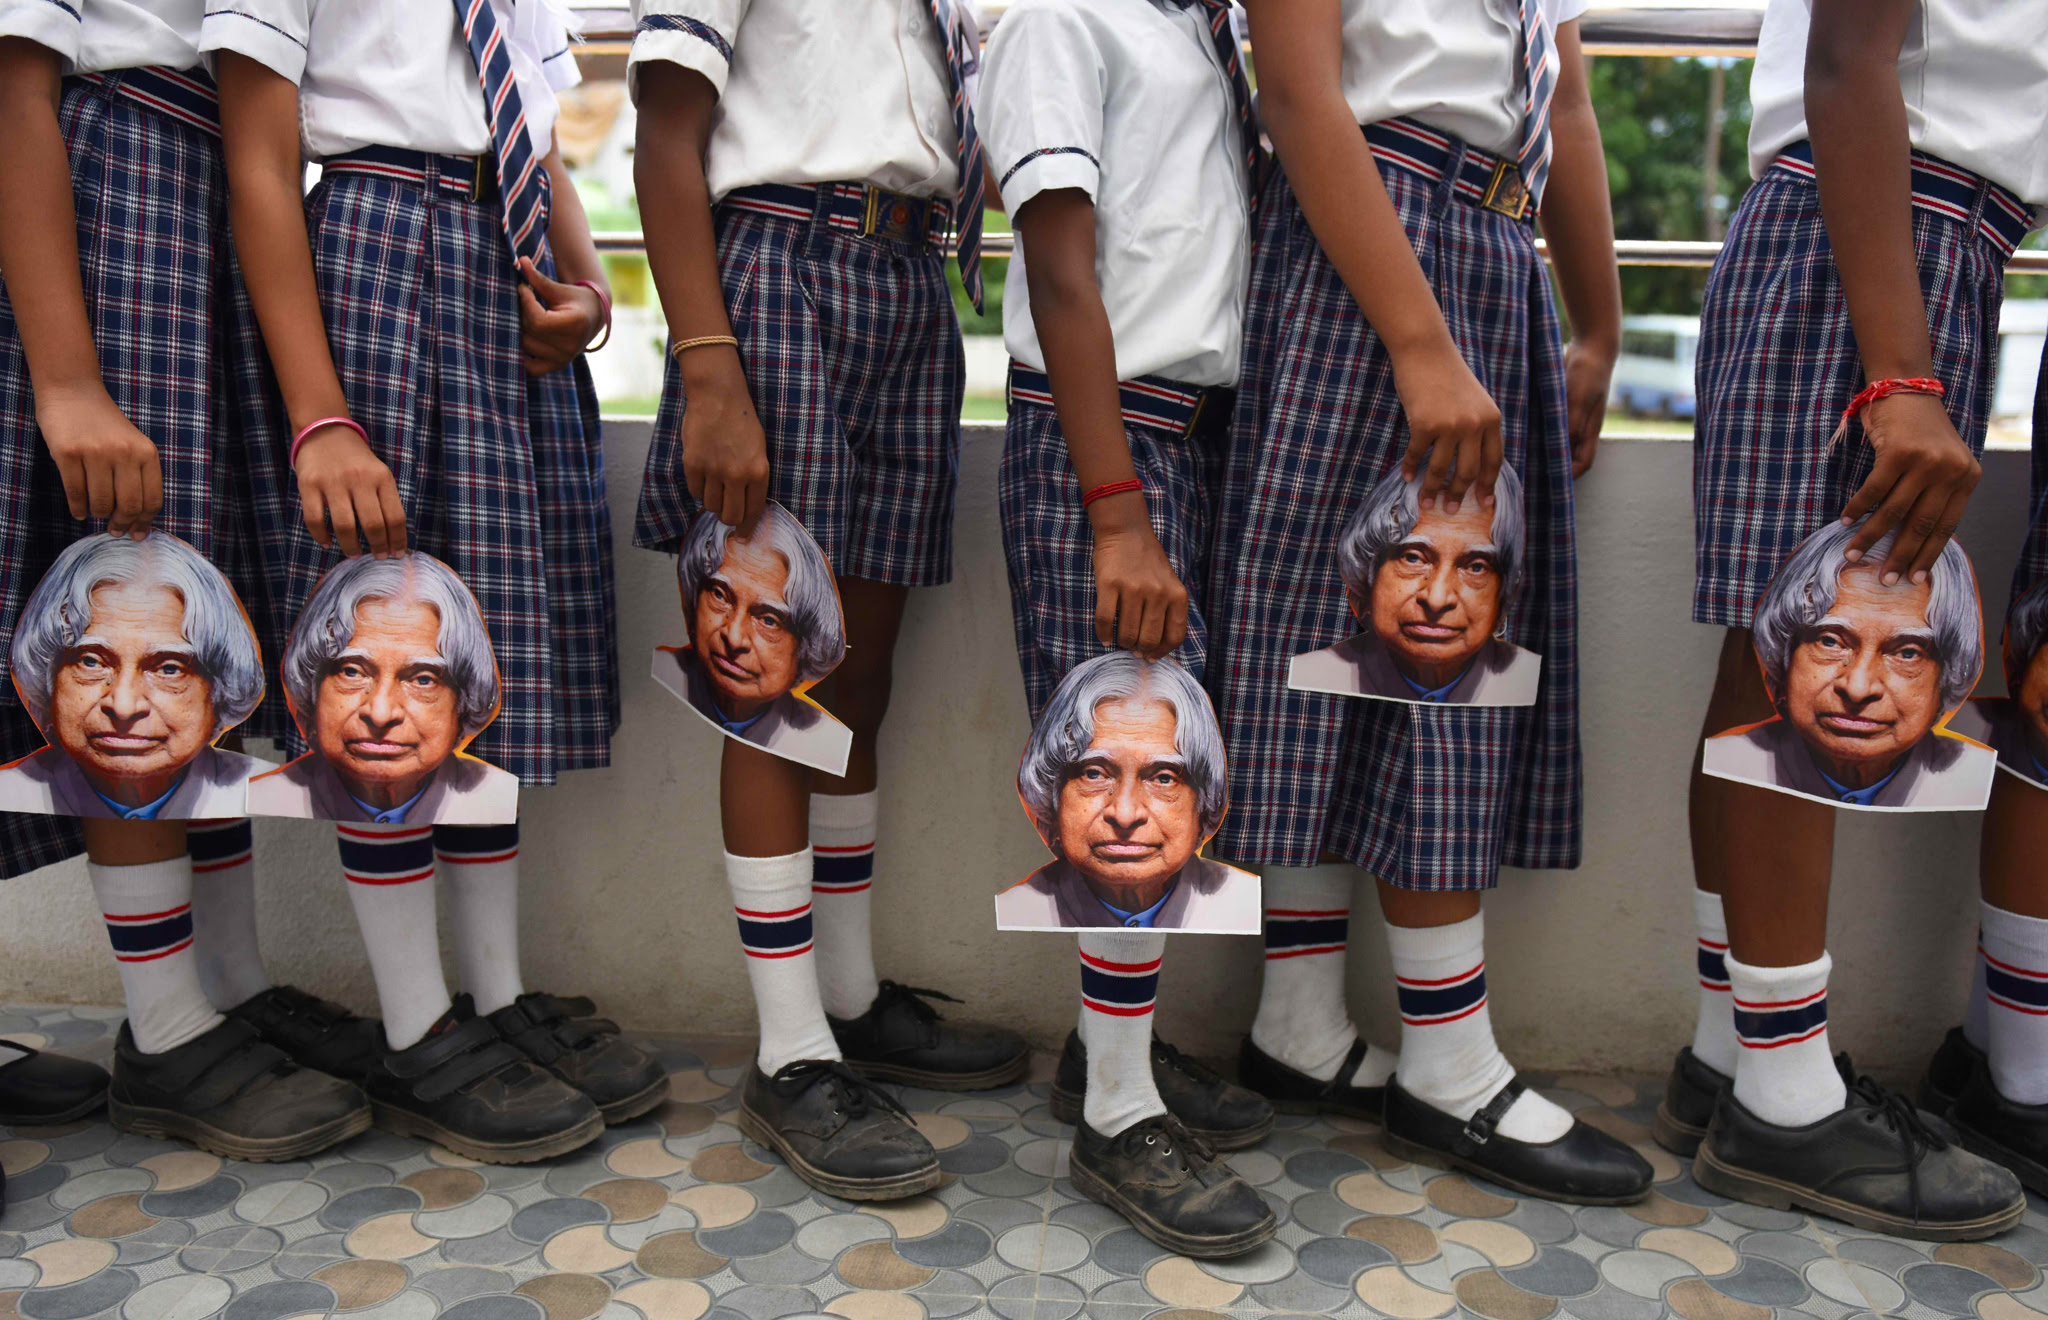 TOPSHOT - Indian schoolchildren hold masks bearing the image of former Indian president A.P.J Kalam ahead of the first anniversary of his death during a remembrance event at a school in Chennai